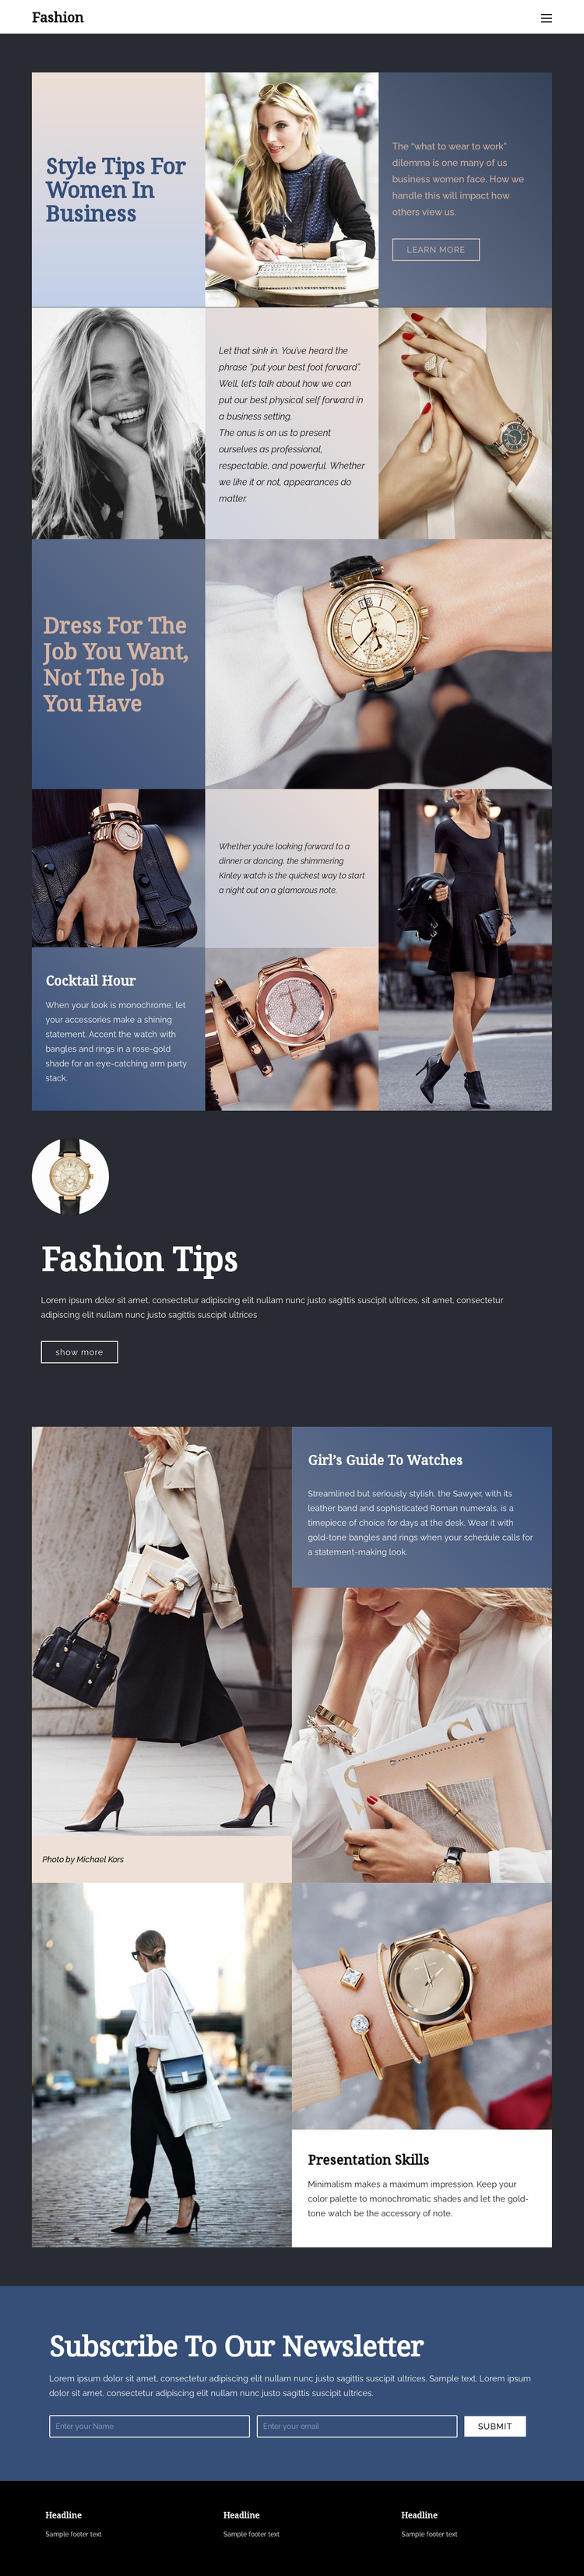 Tips to succeed in fashion Web Page Designer